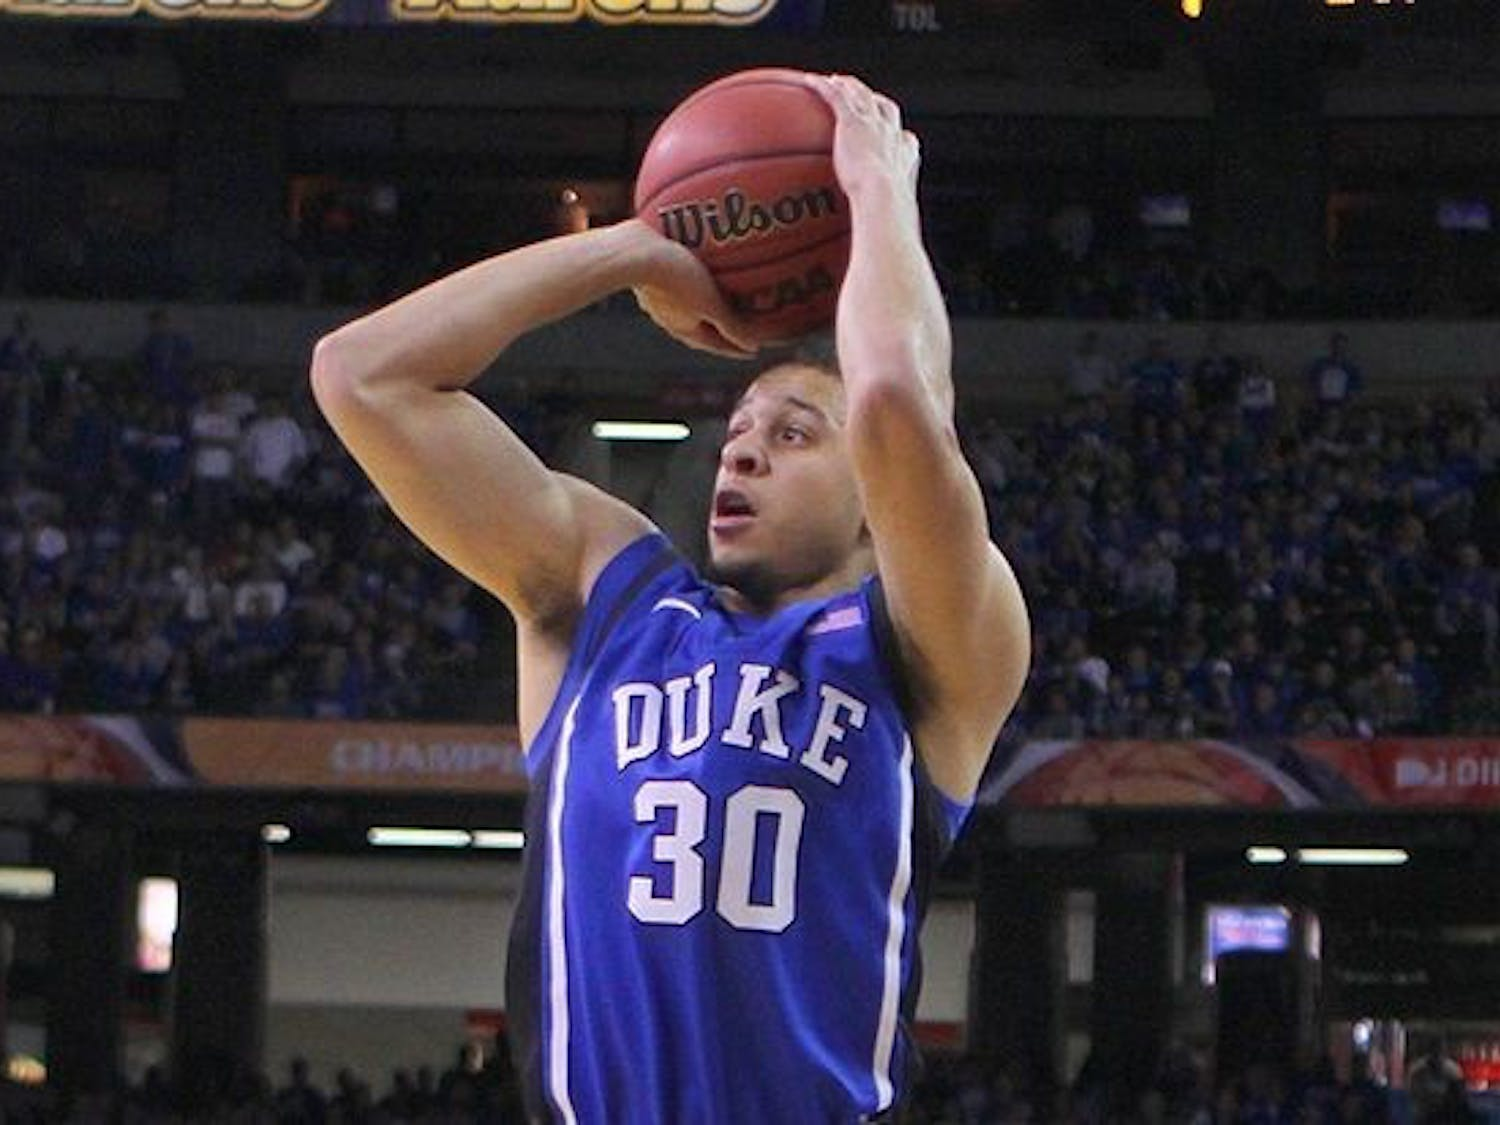 Seth Curry is averaging 12.9 points per game on a 43.2% clip from beyond the arc.